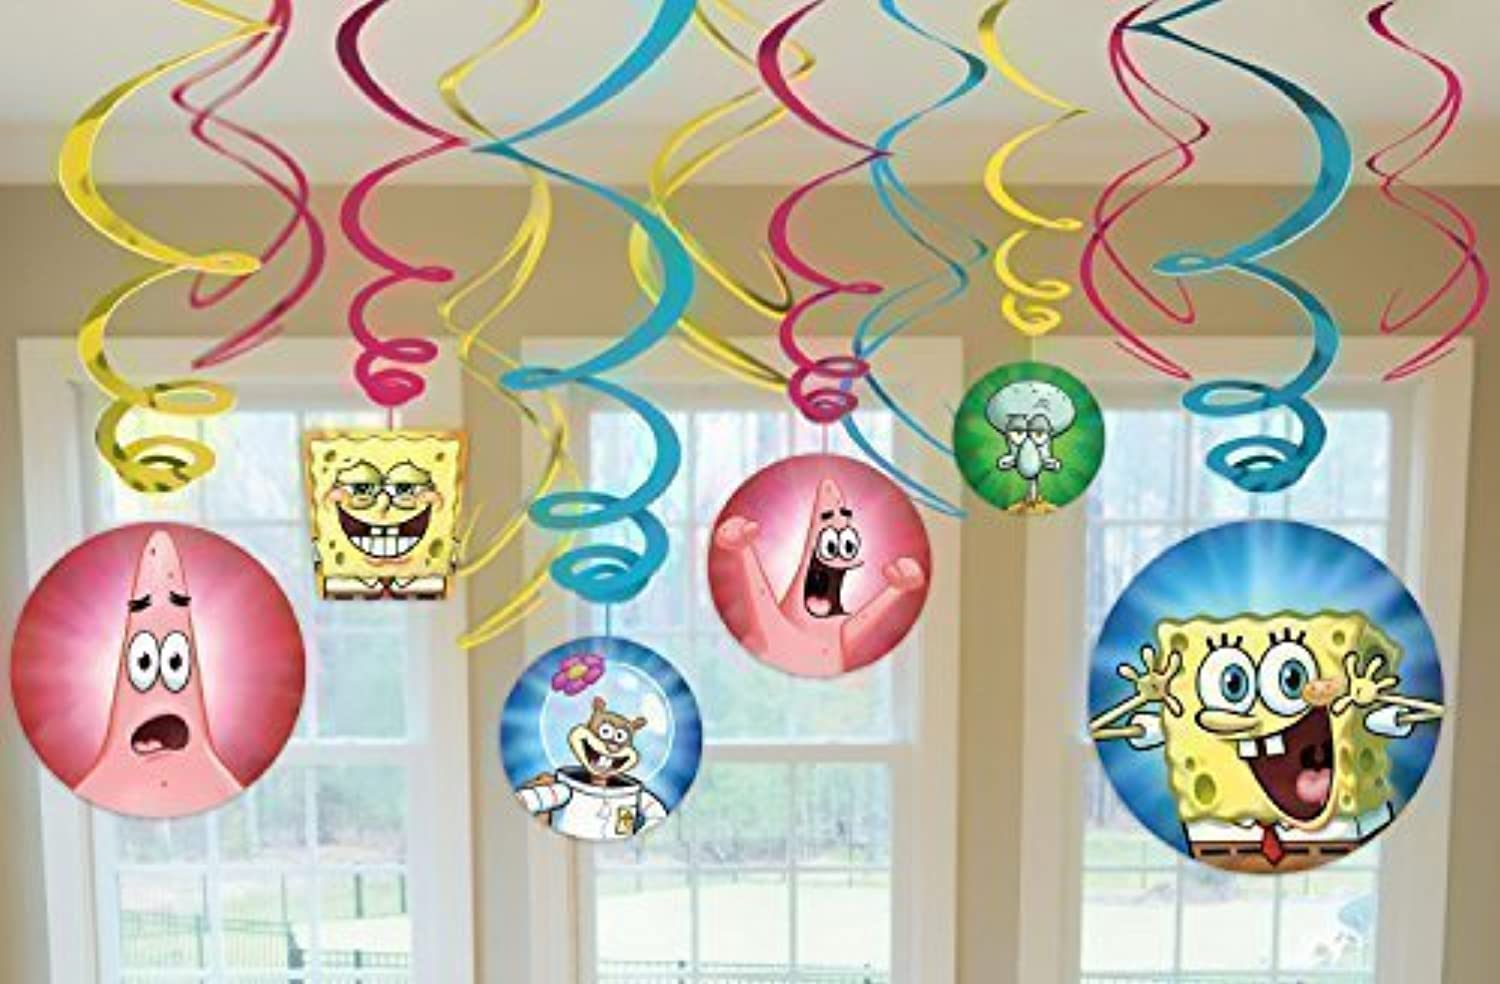 SpongeBob SquarePants Party Foil Hanging Swirl Decorations   Spiral Ornaments (12 PCS) Party Supply, Party Decorations by SpongeBob SquarePants